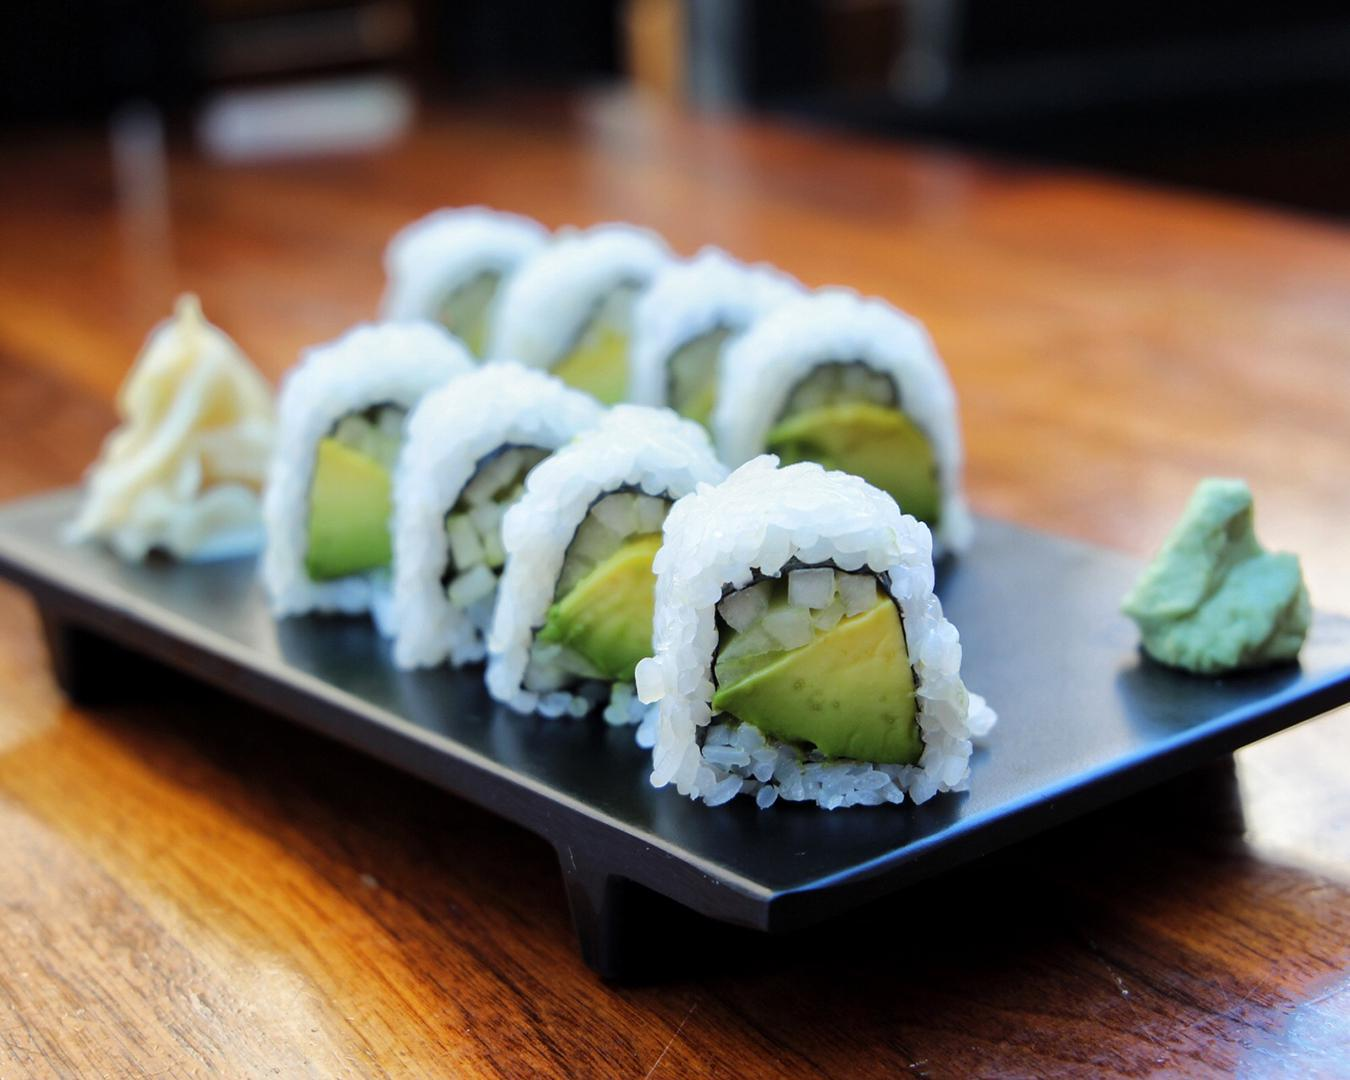 Avocado & Cucumber Roll